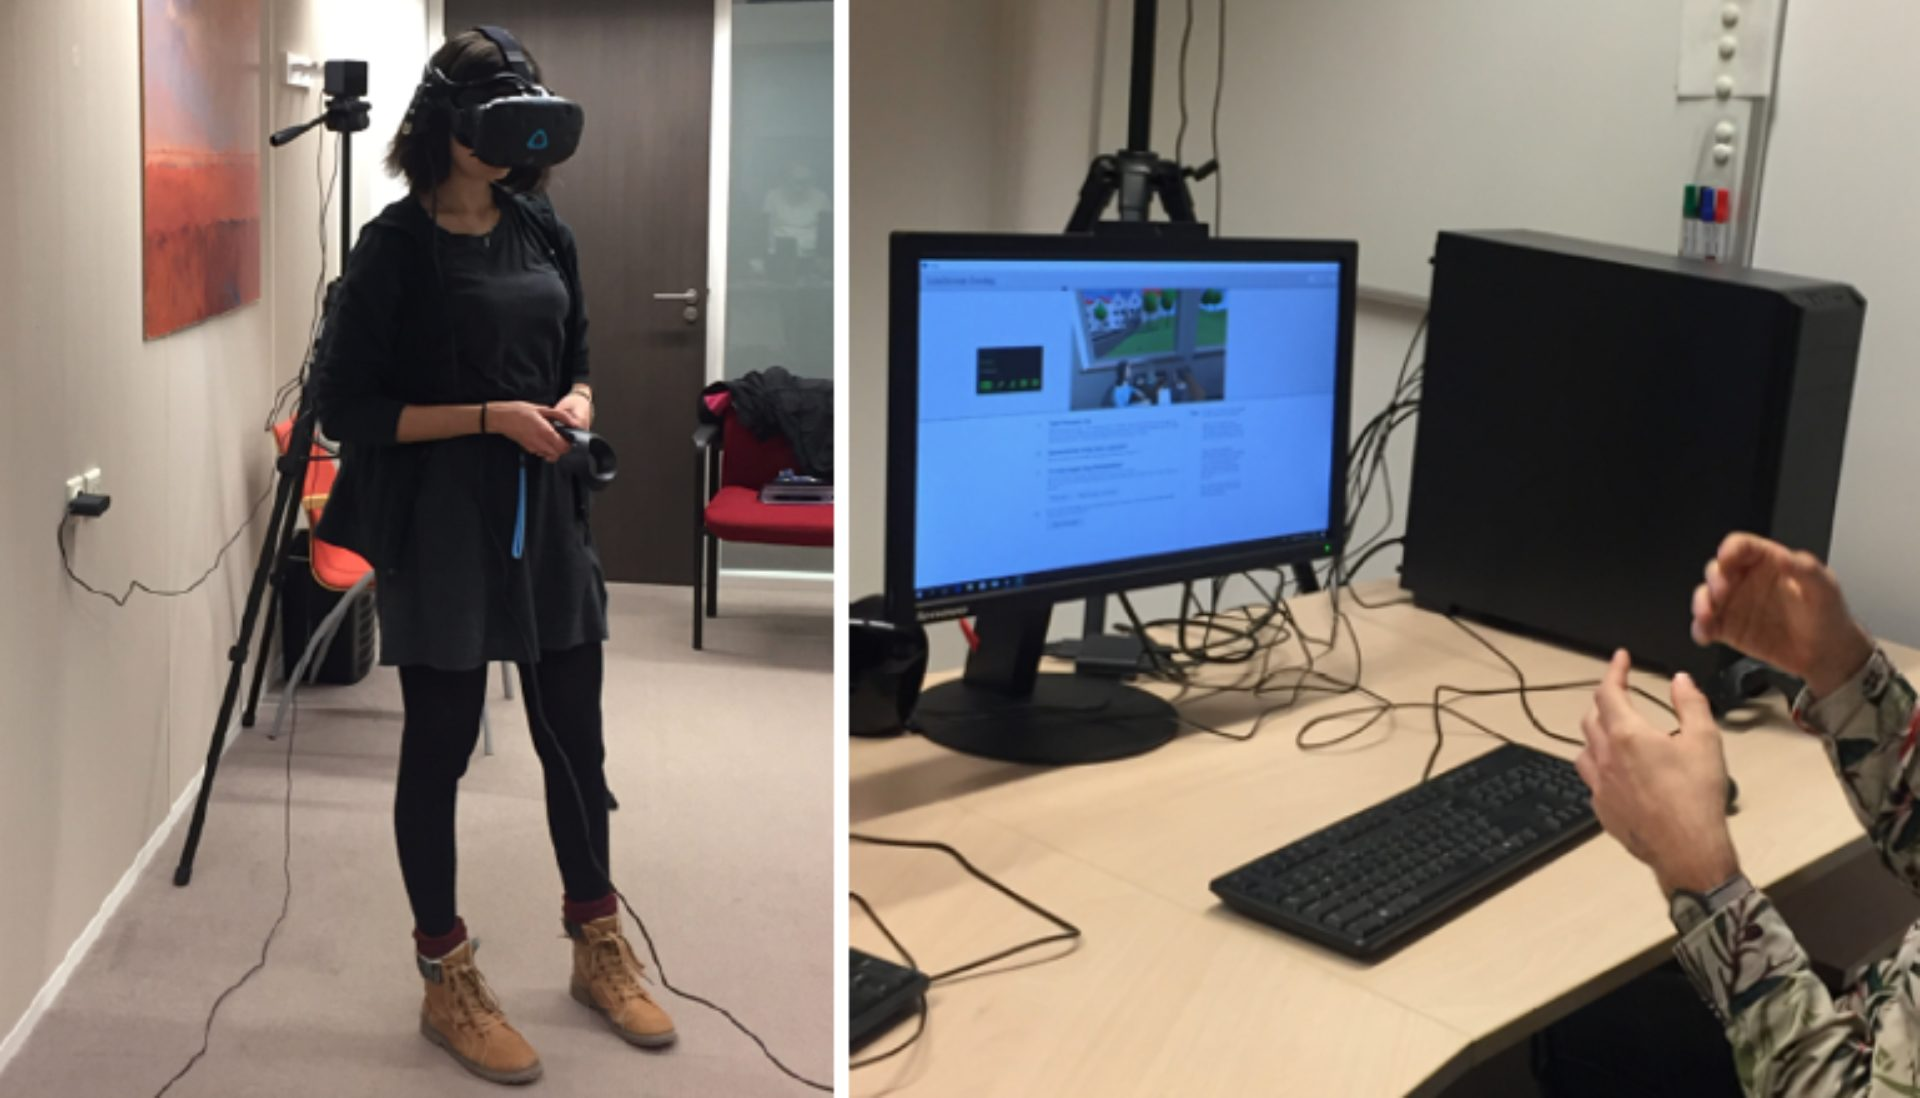 Cognitive behavioural therapy through a VR environment